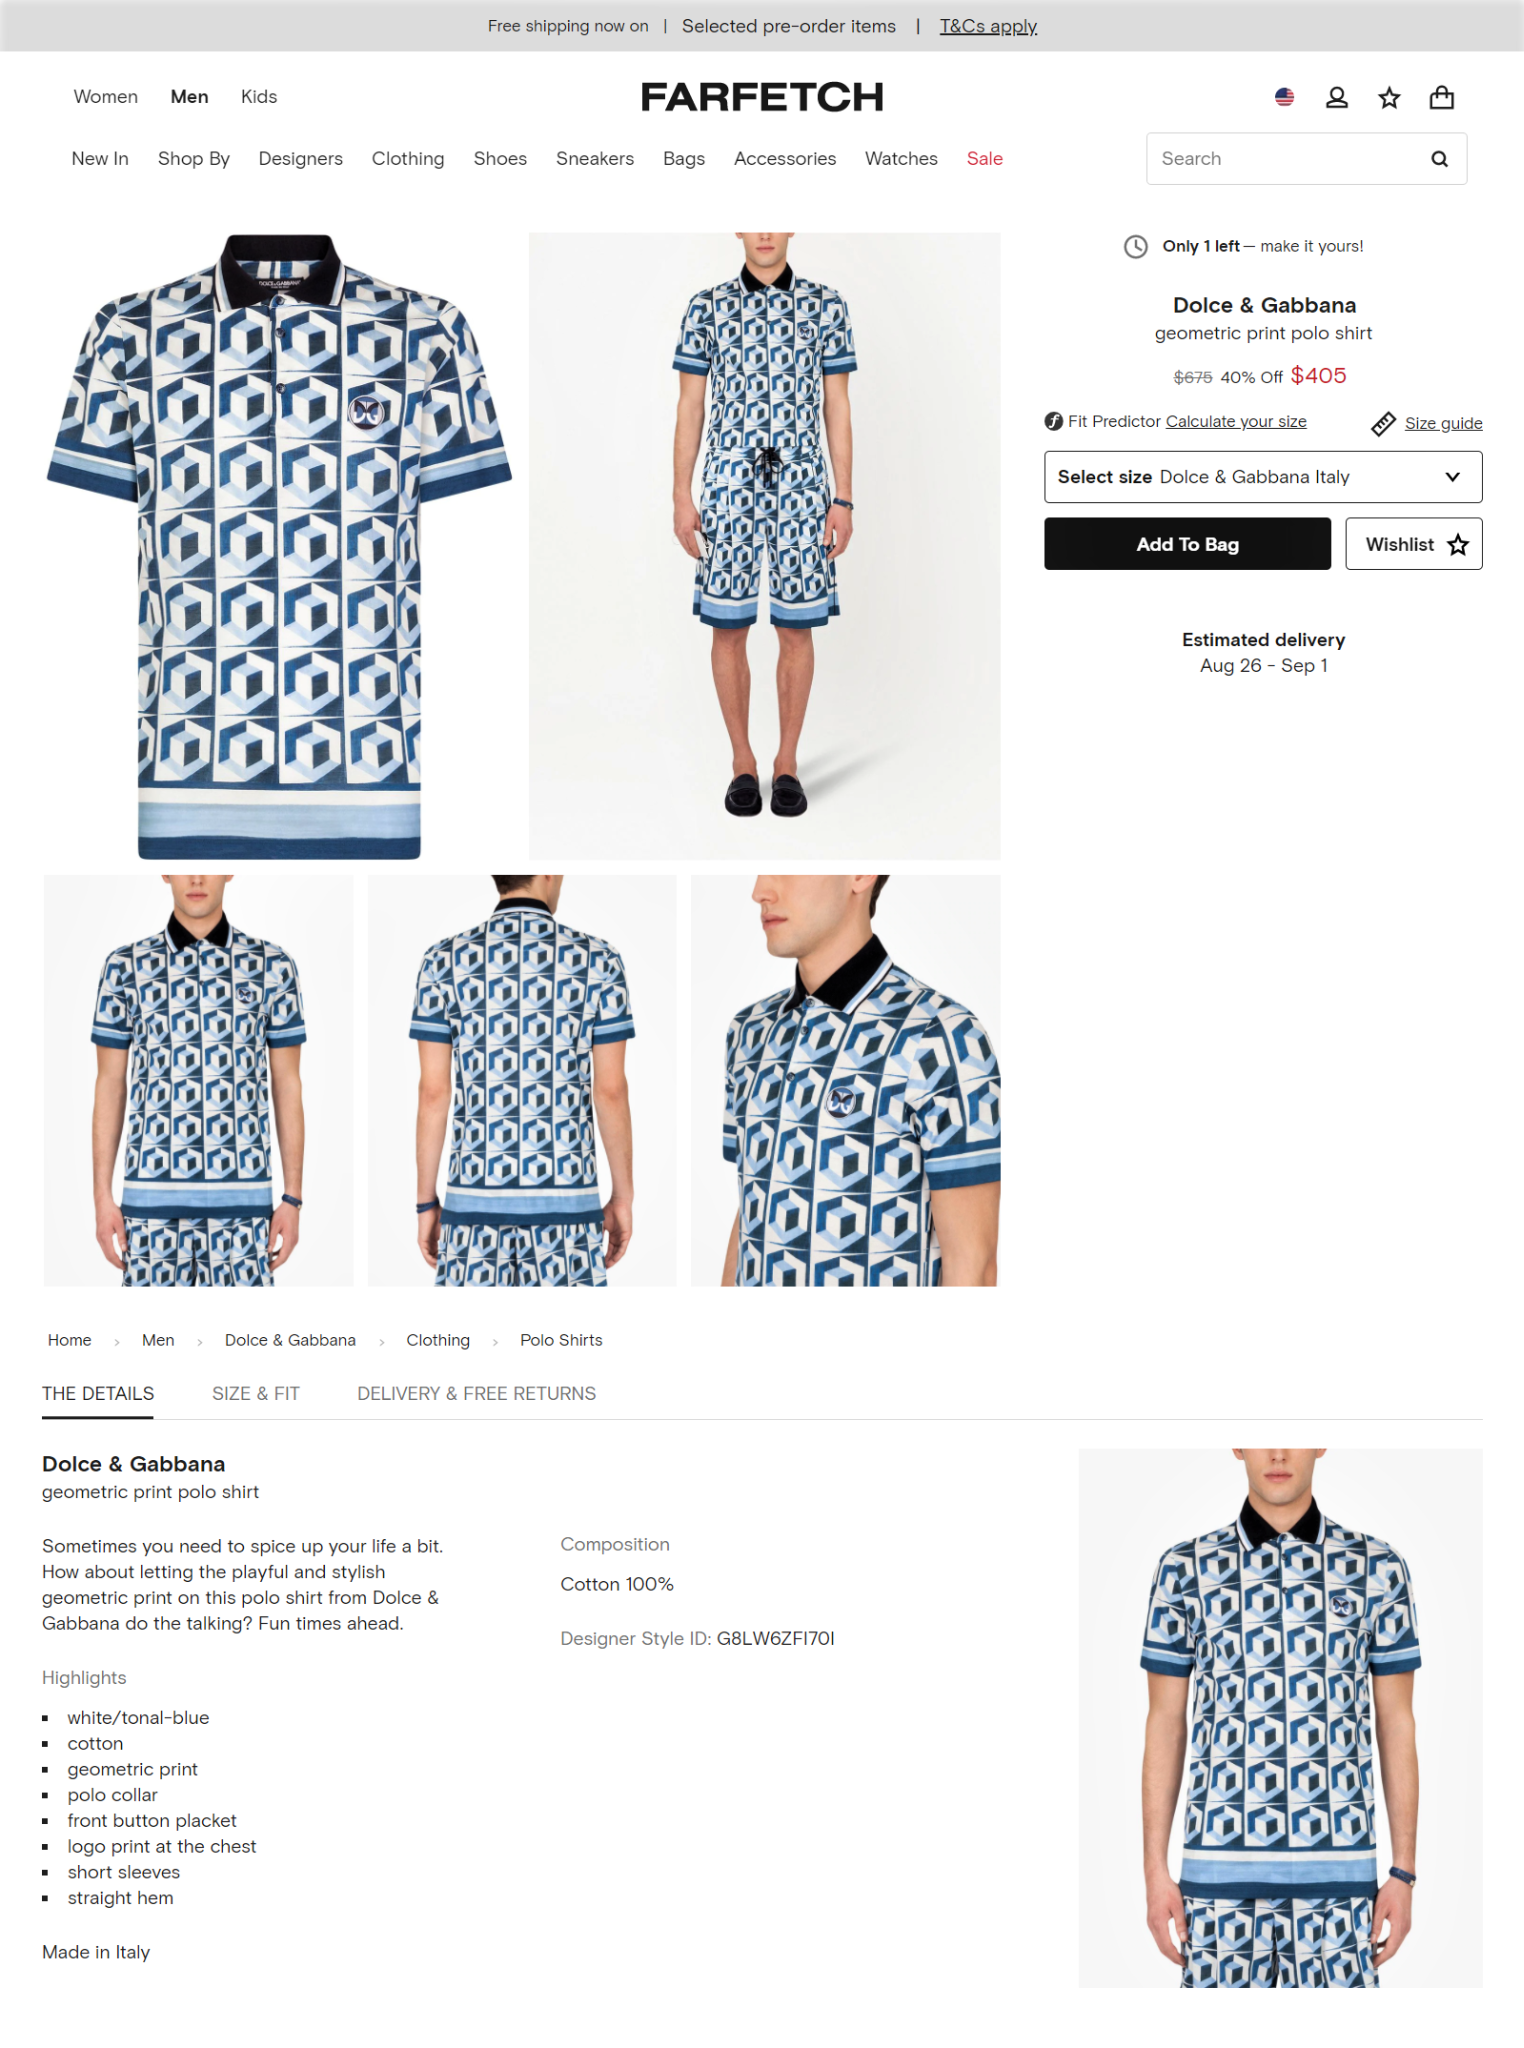 Product page design example from Farfetch